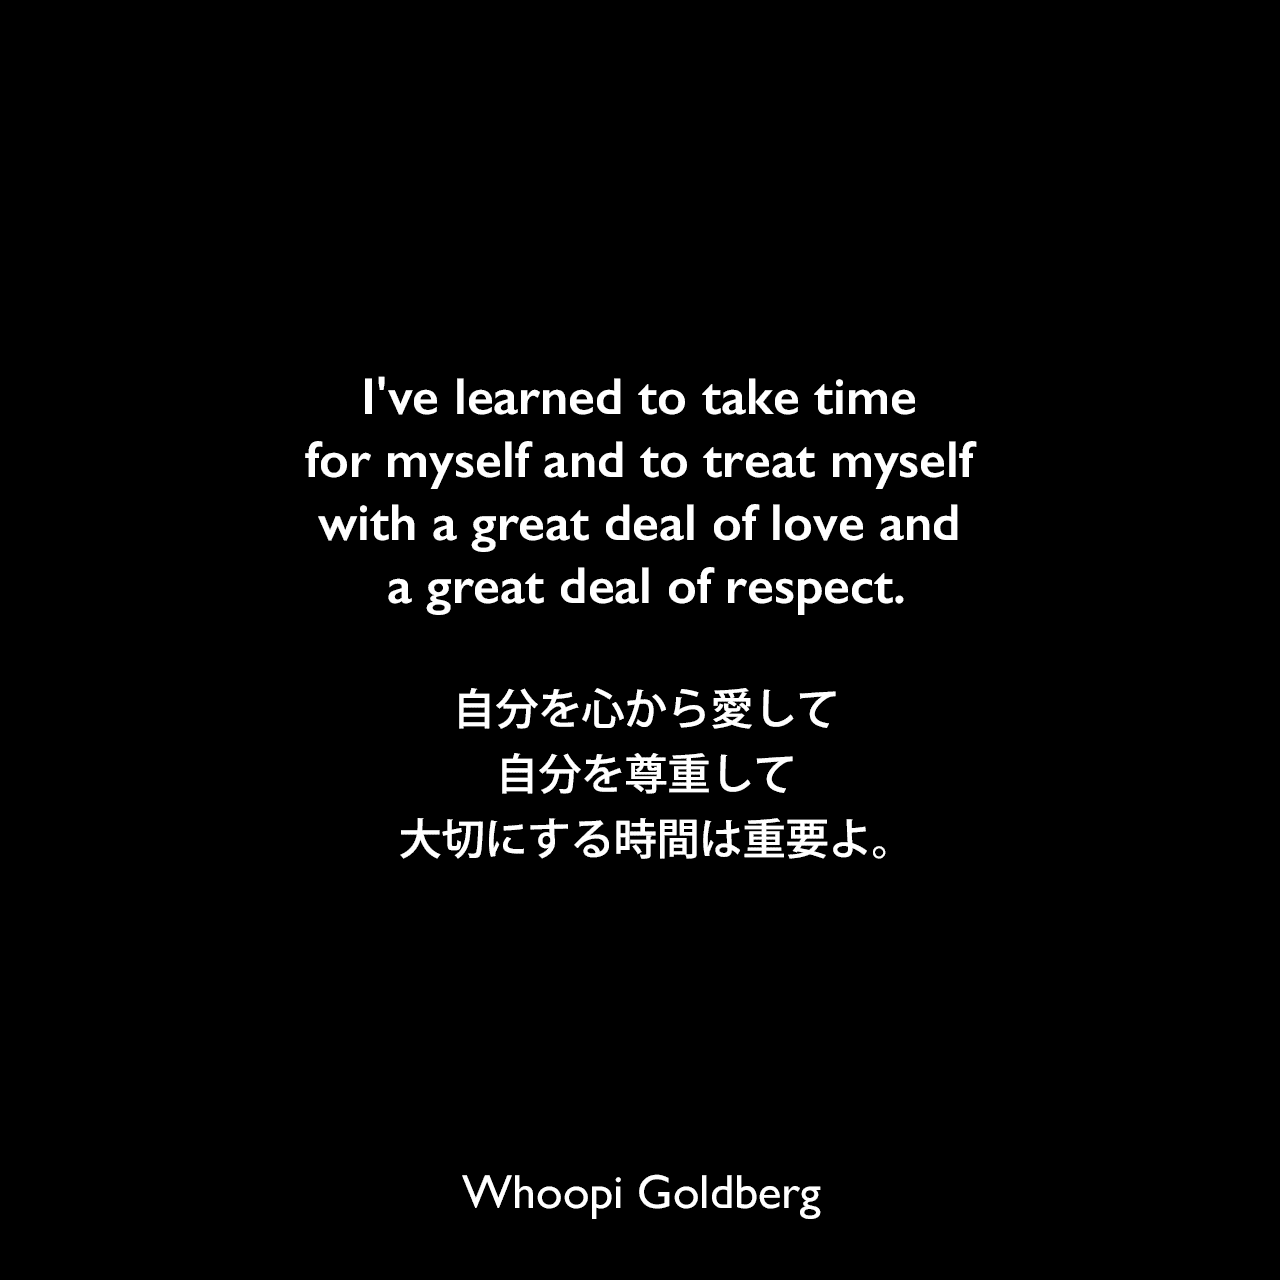 I've learned to take time for myself and to treat myself with a great deal of love and a great deal of respect.自分を心から愛して、自分を尊重して、大切にする時間は重要よ。